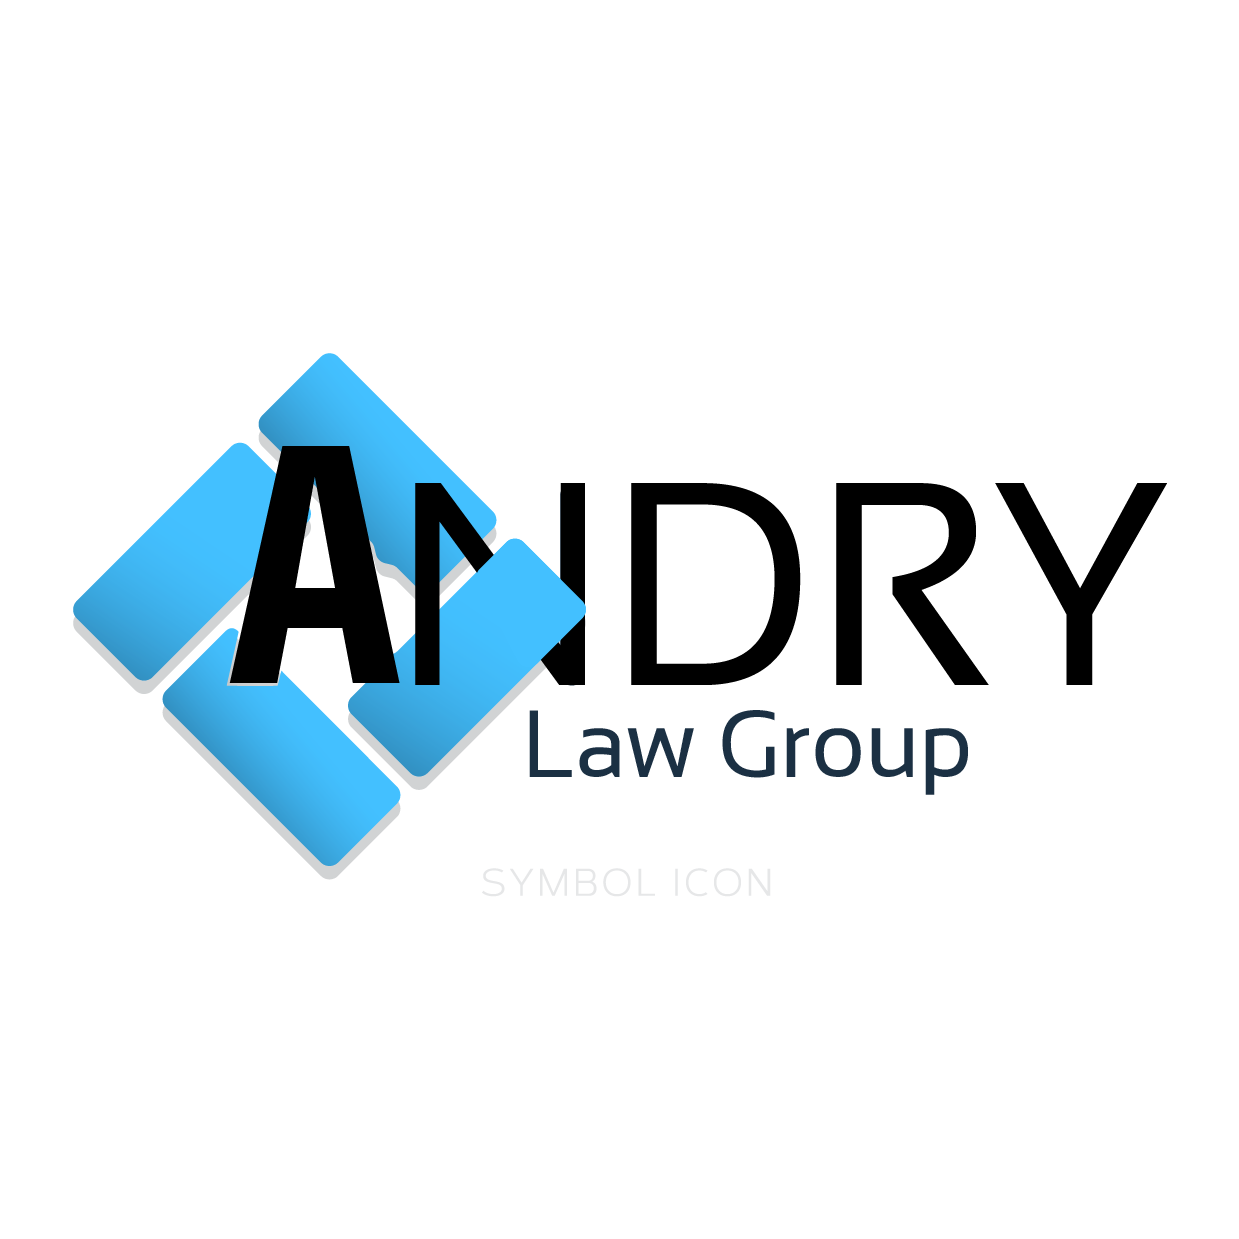 Andry Law Group